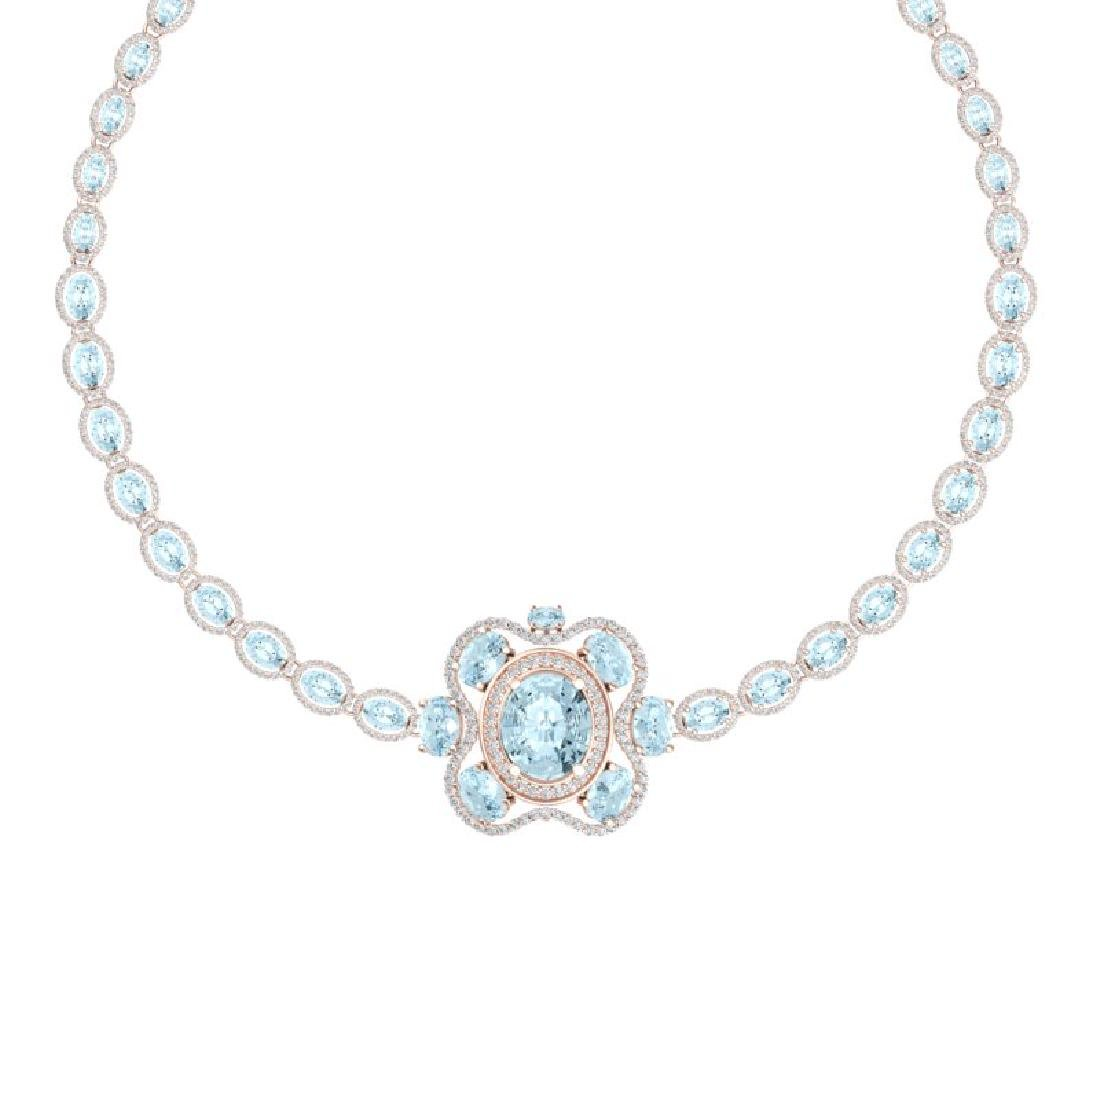 47.72 CTW Royalty Sky Topaz & VS Diamond Necklace 18K - 2